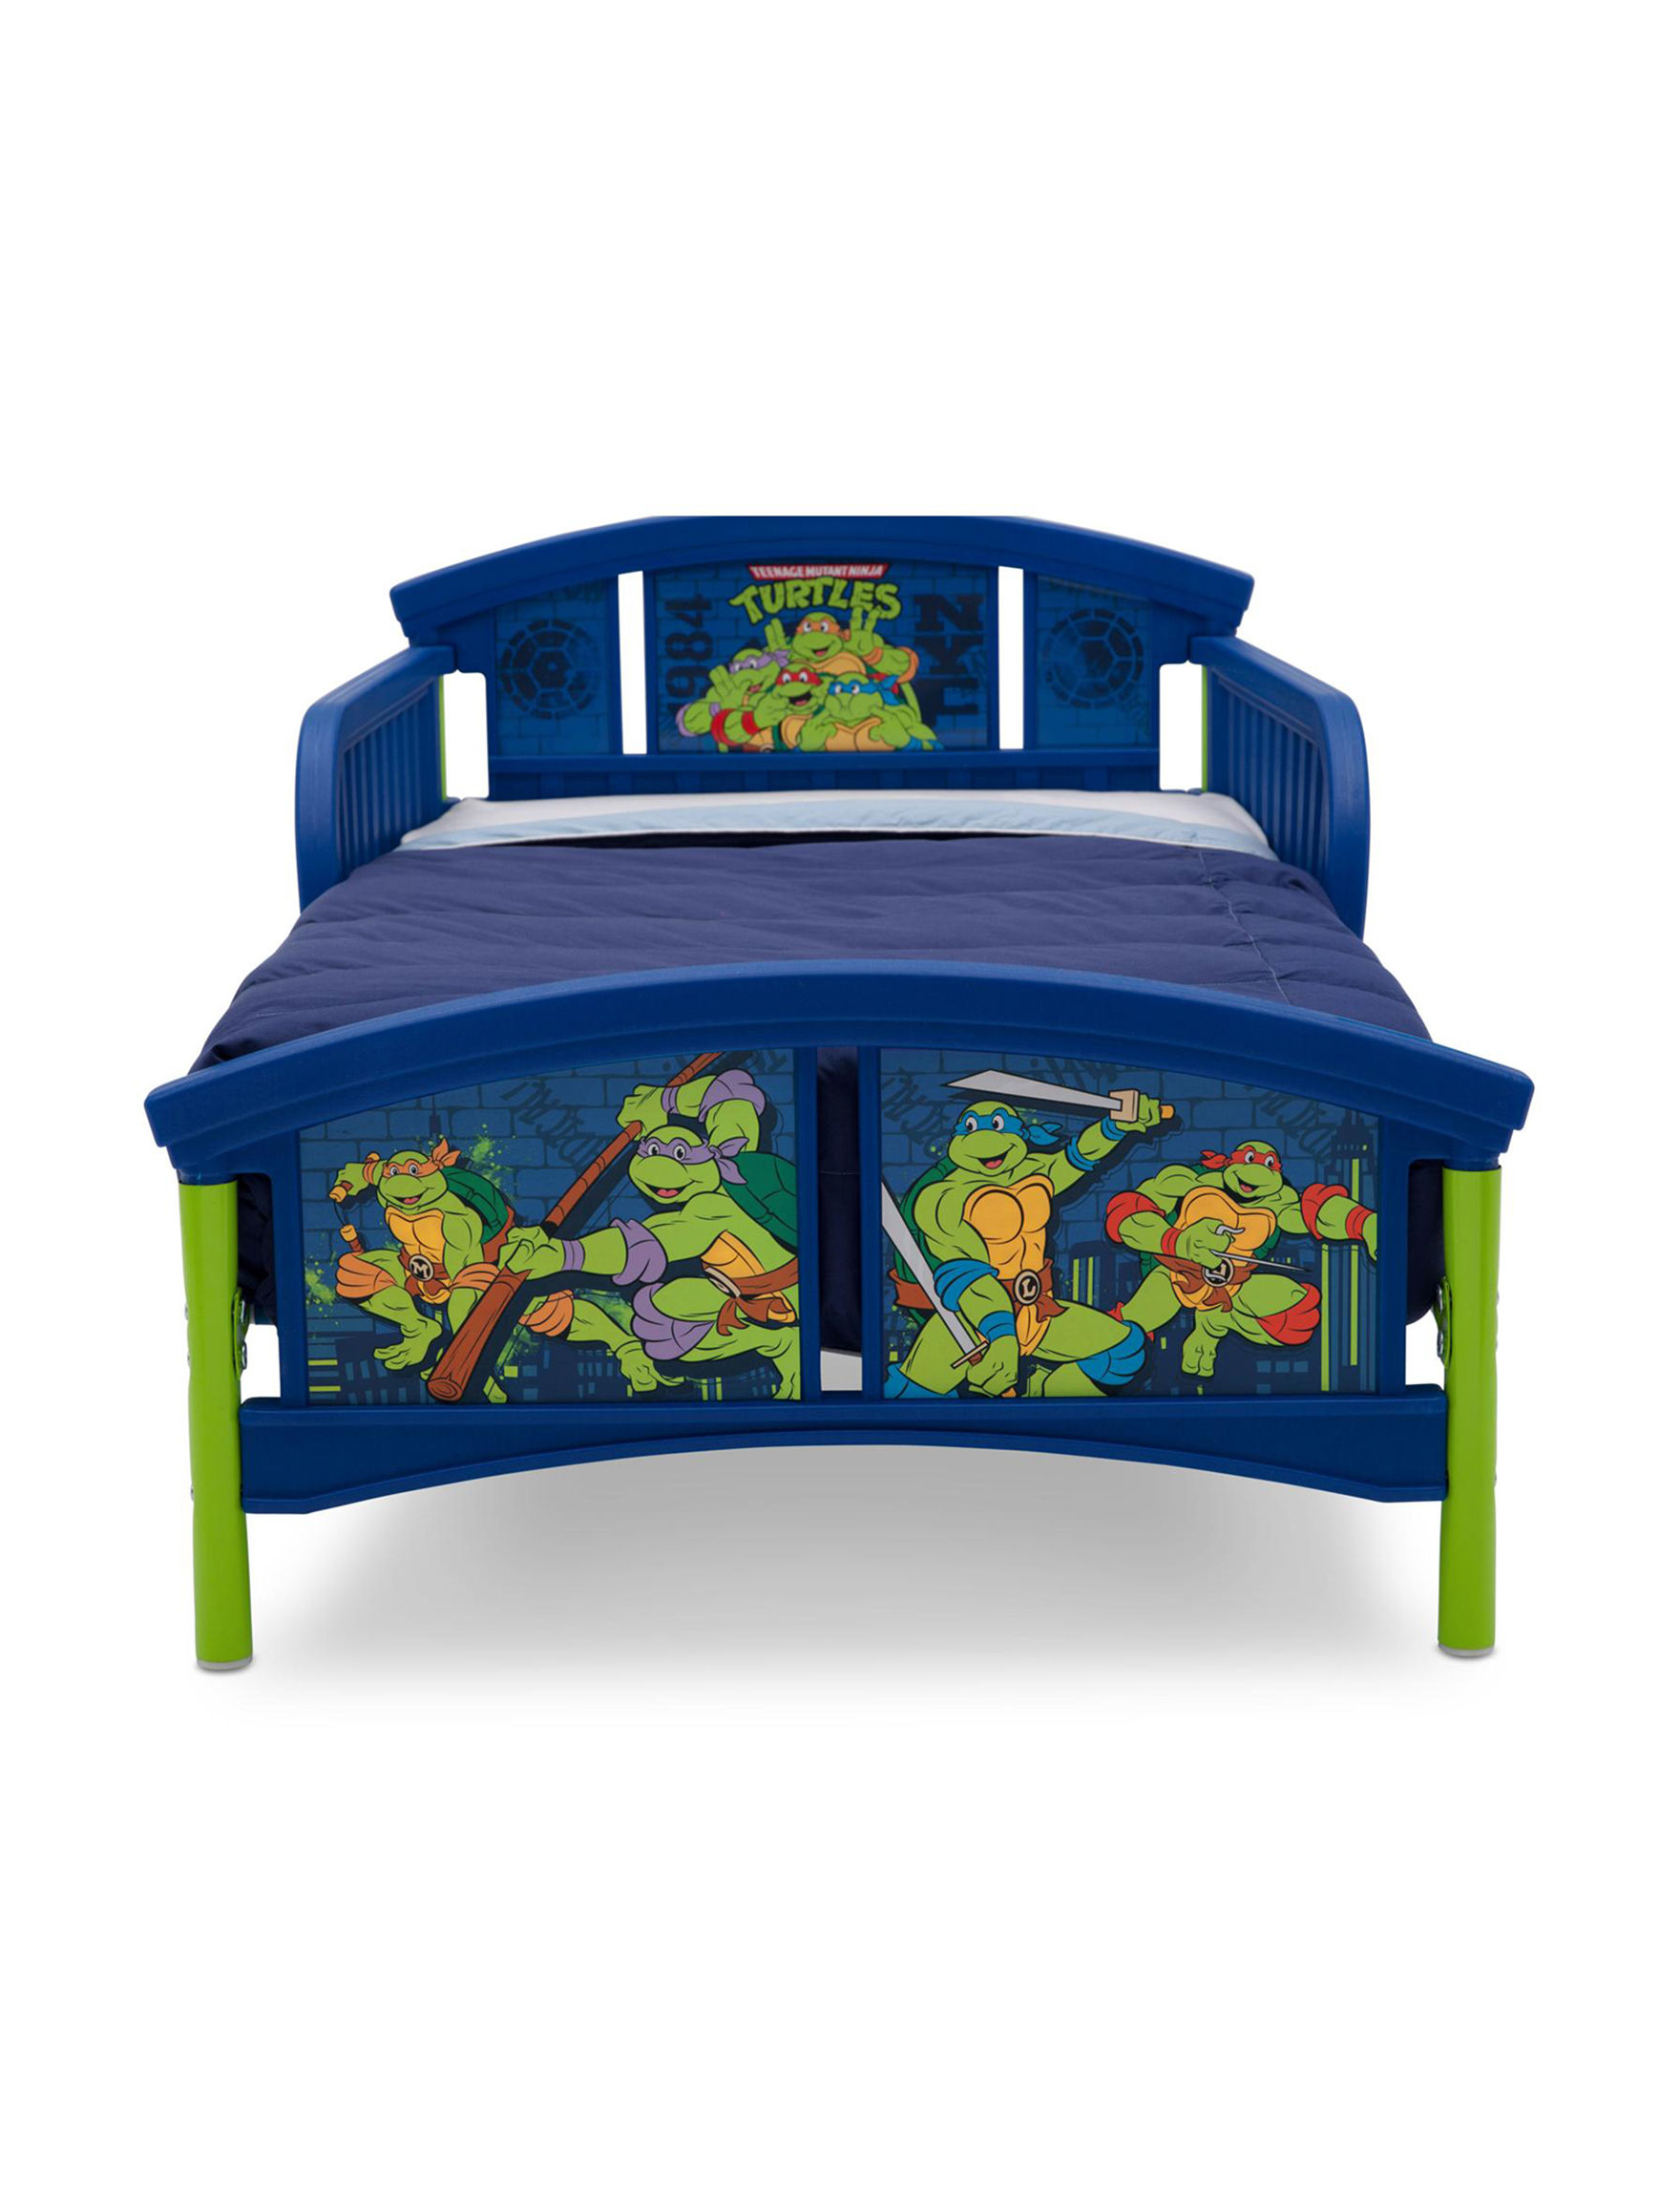 Nickelodeon Teenage Mutant Ninja Turtles Toddler Bed